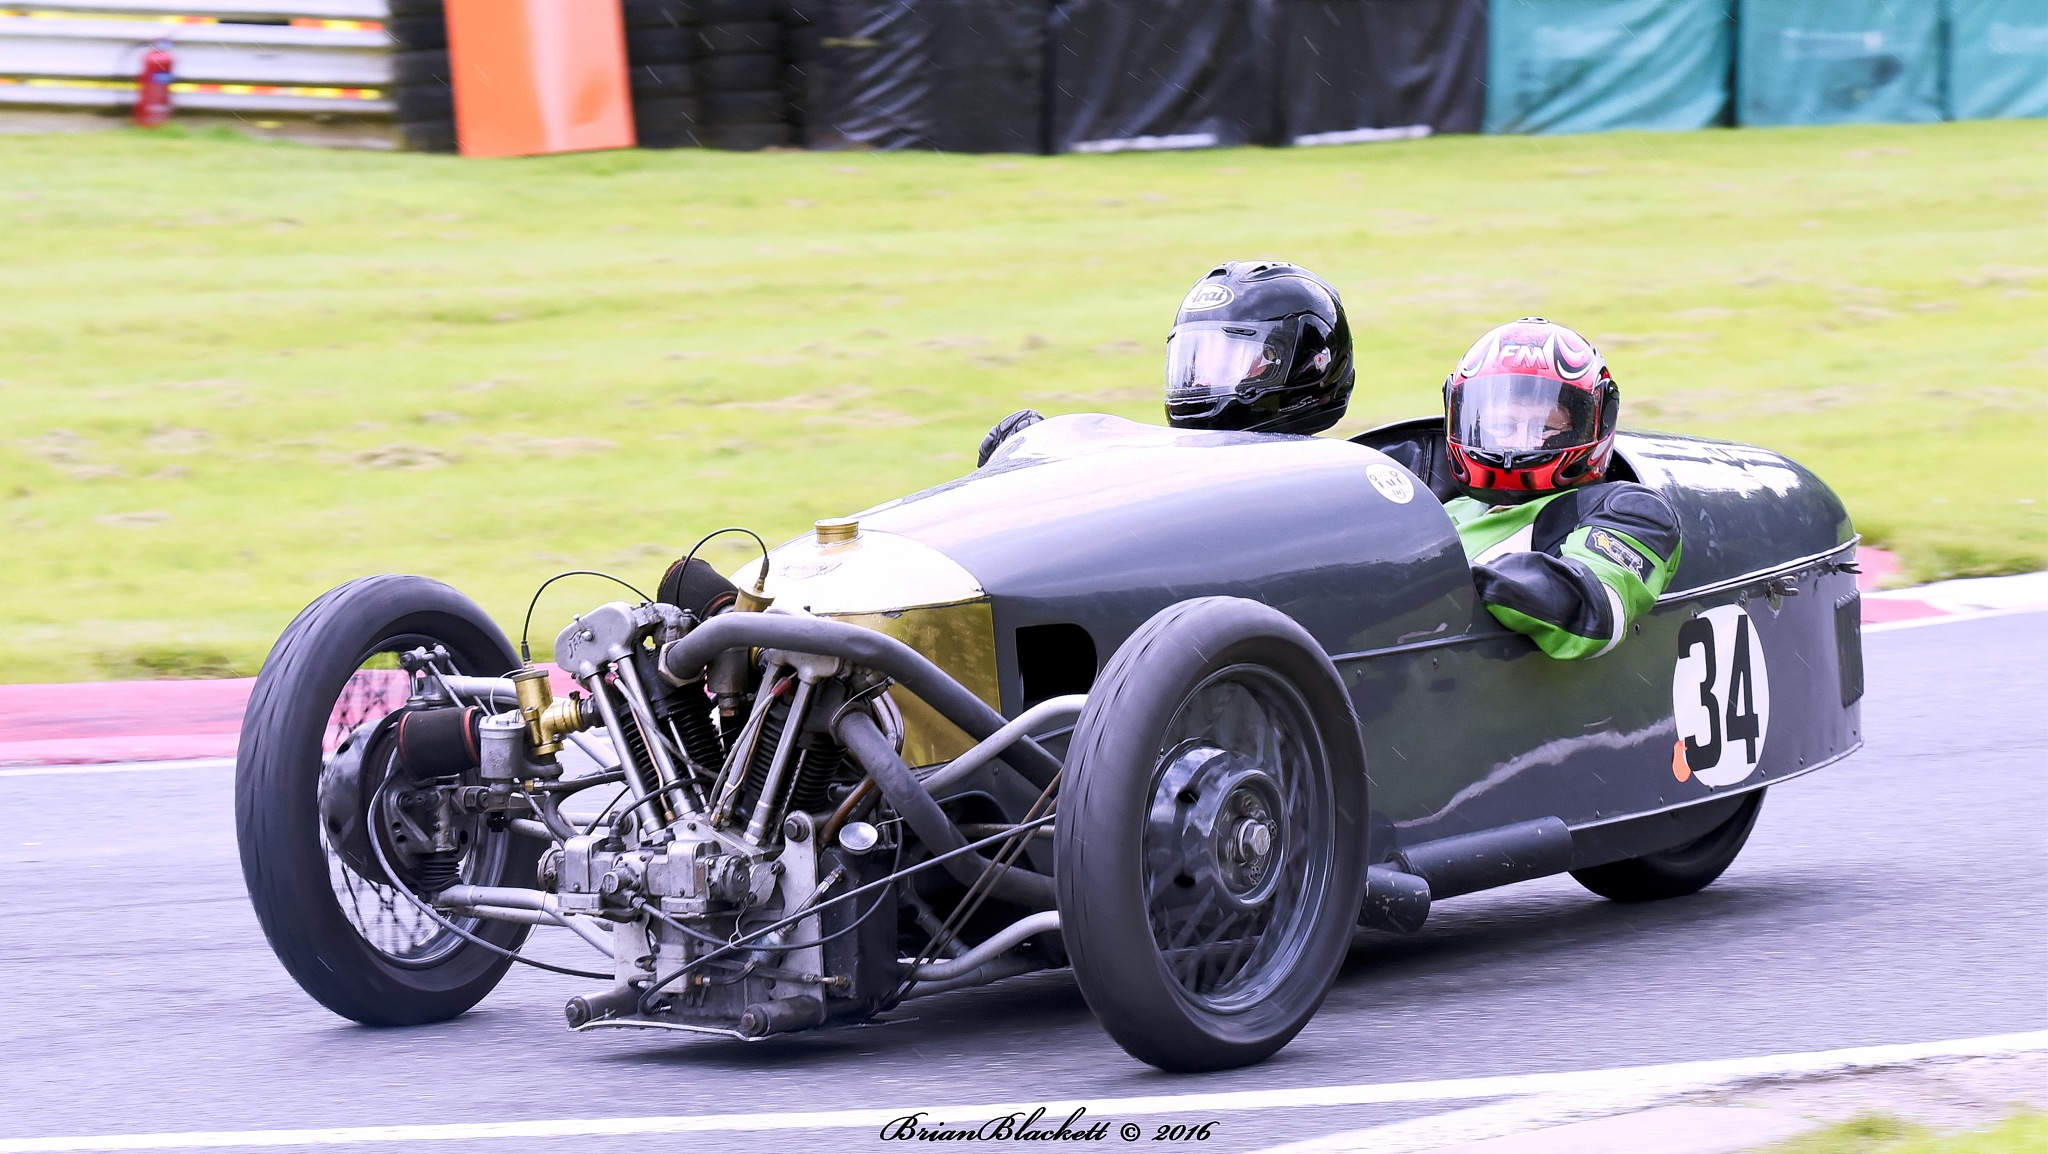 British Historic Racing Club Cadwell Park 2016 by brianblackett